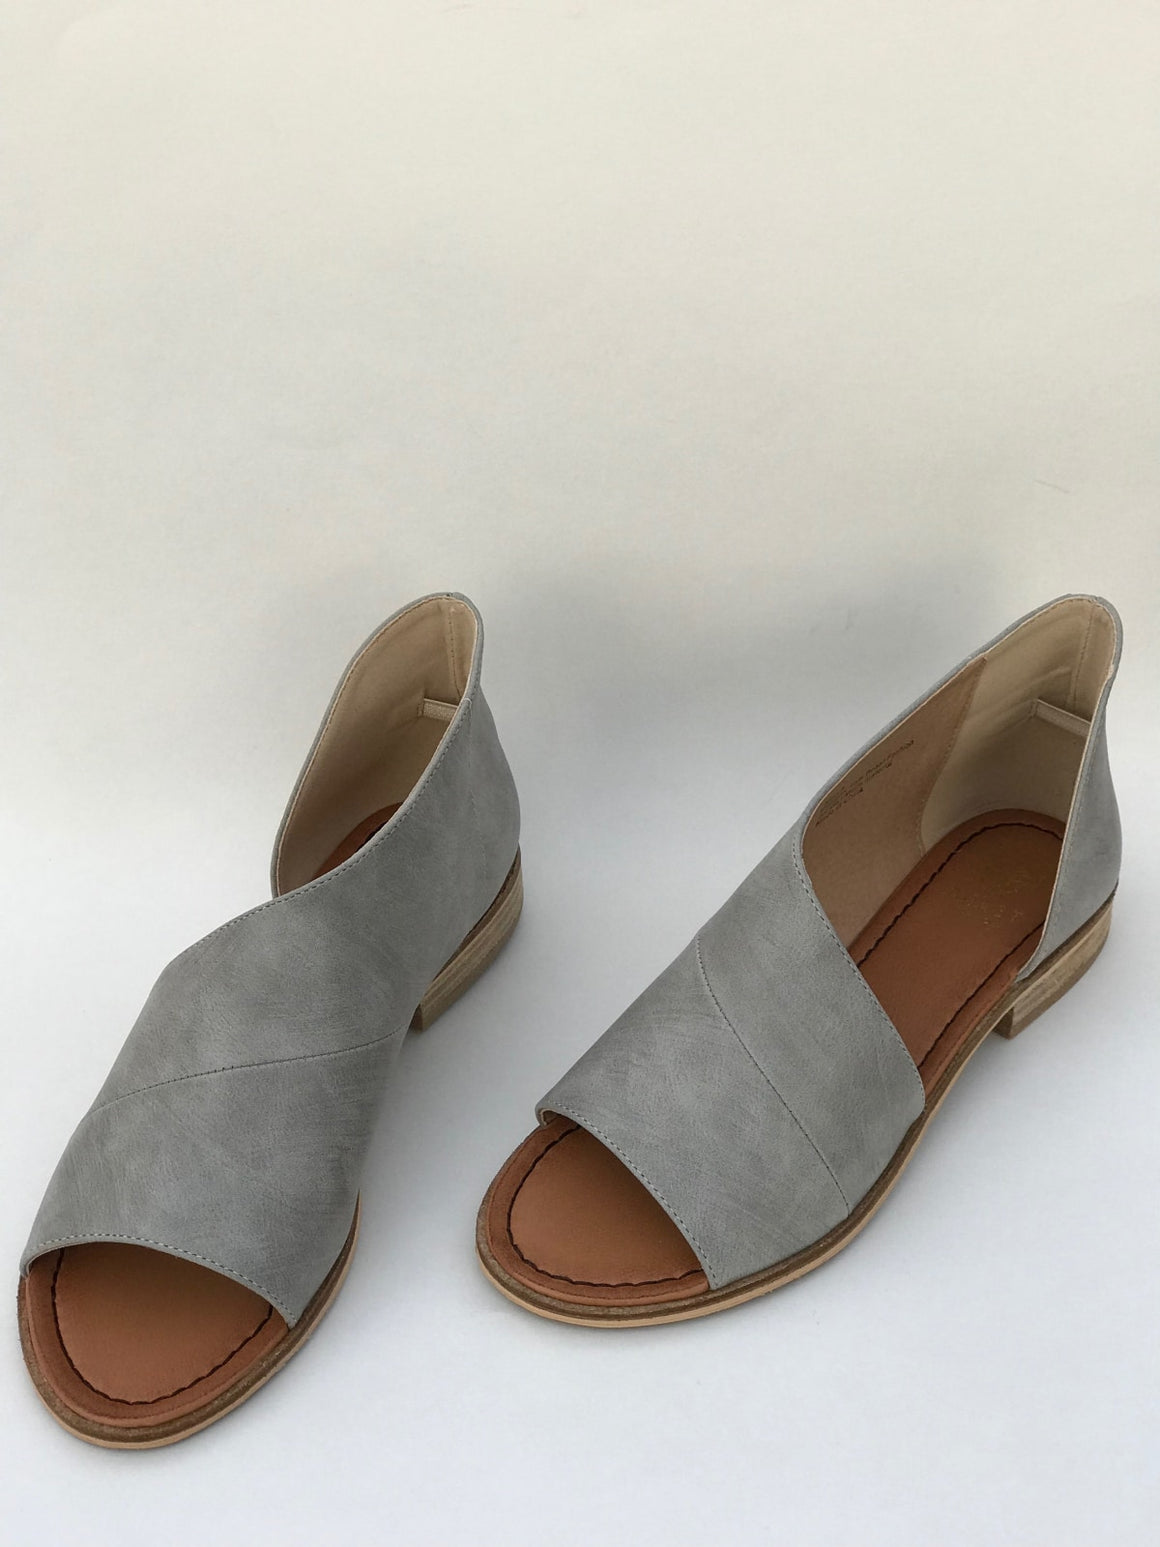 Lotus Shoe In Grey - Shoes